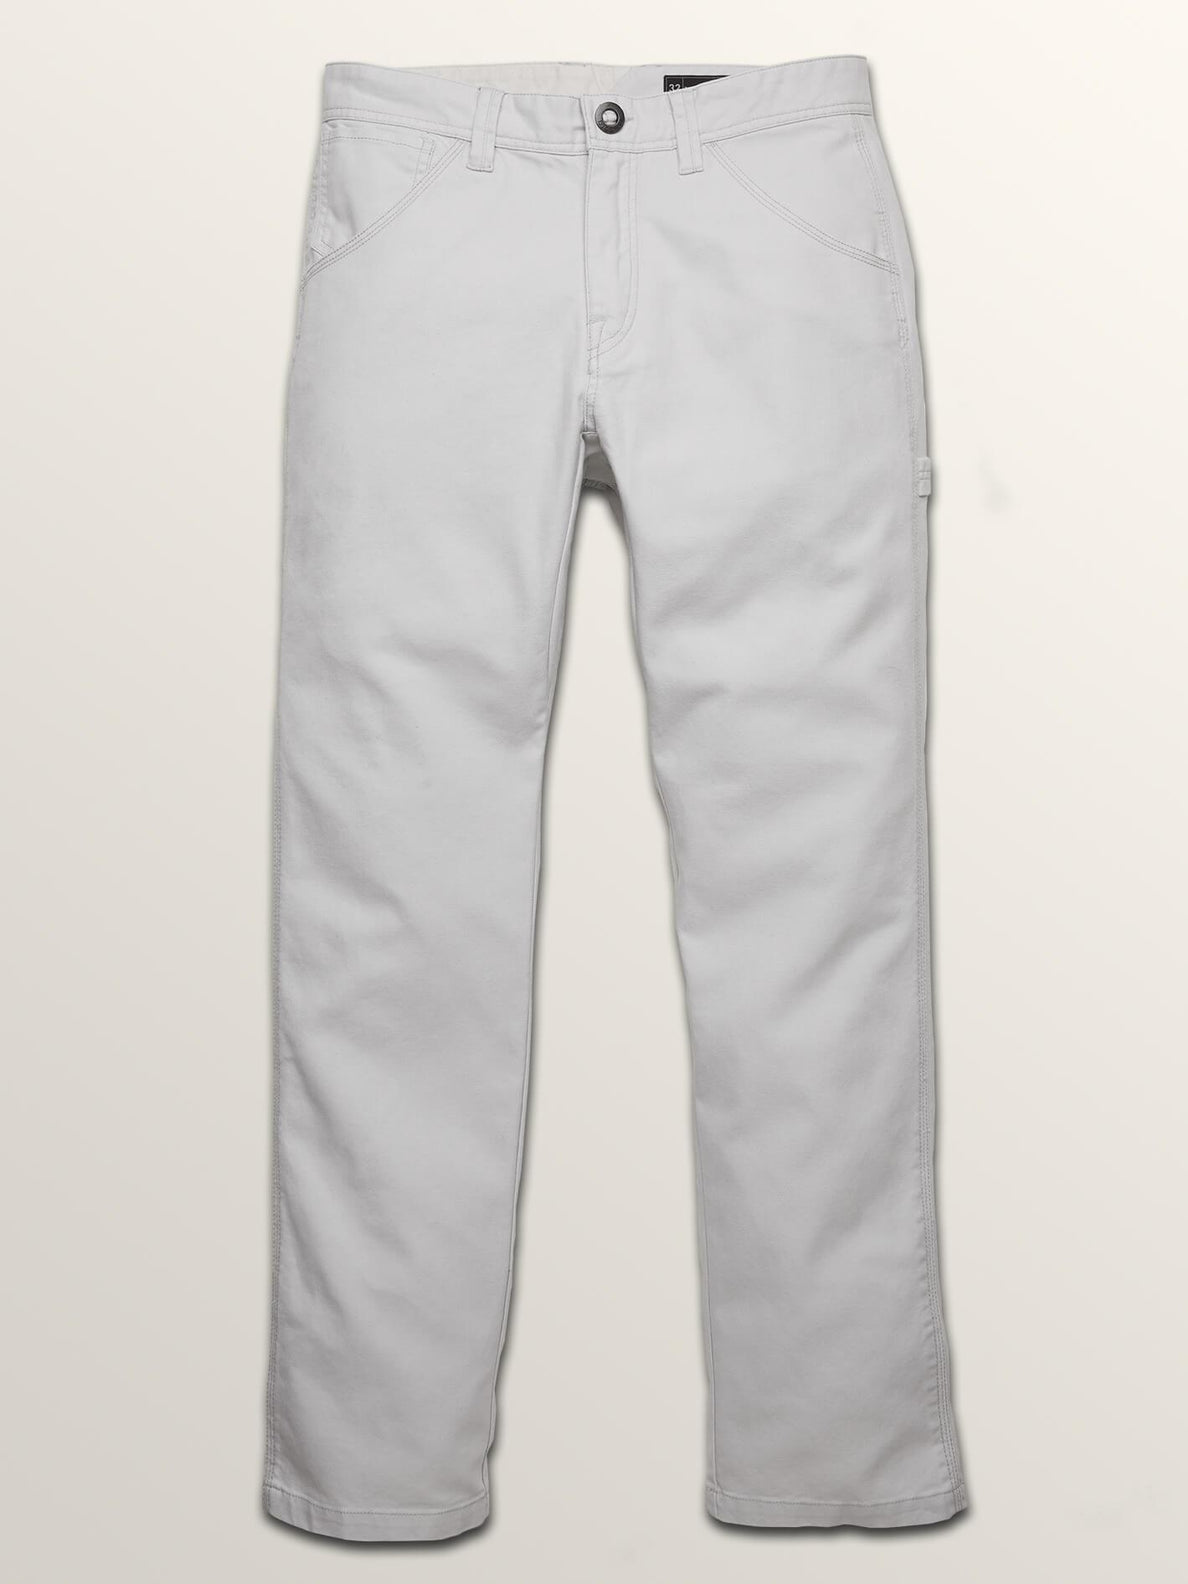 Vsm Whaler Regular Pants In Off White, Sixth Alternate View